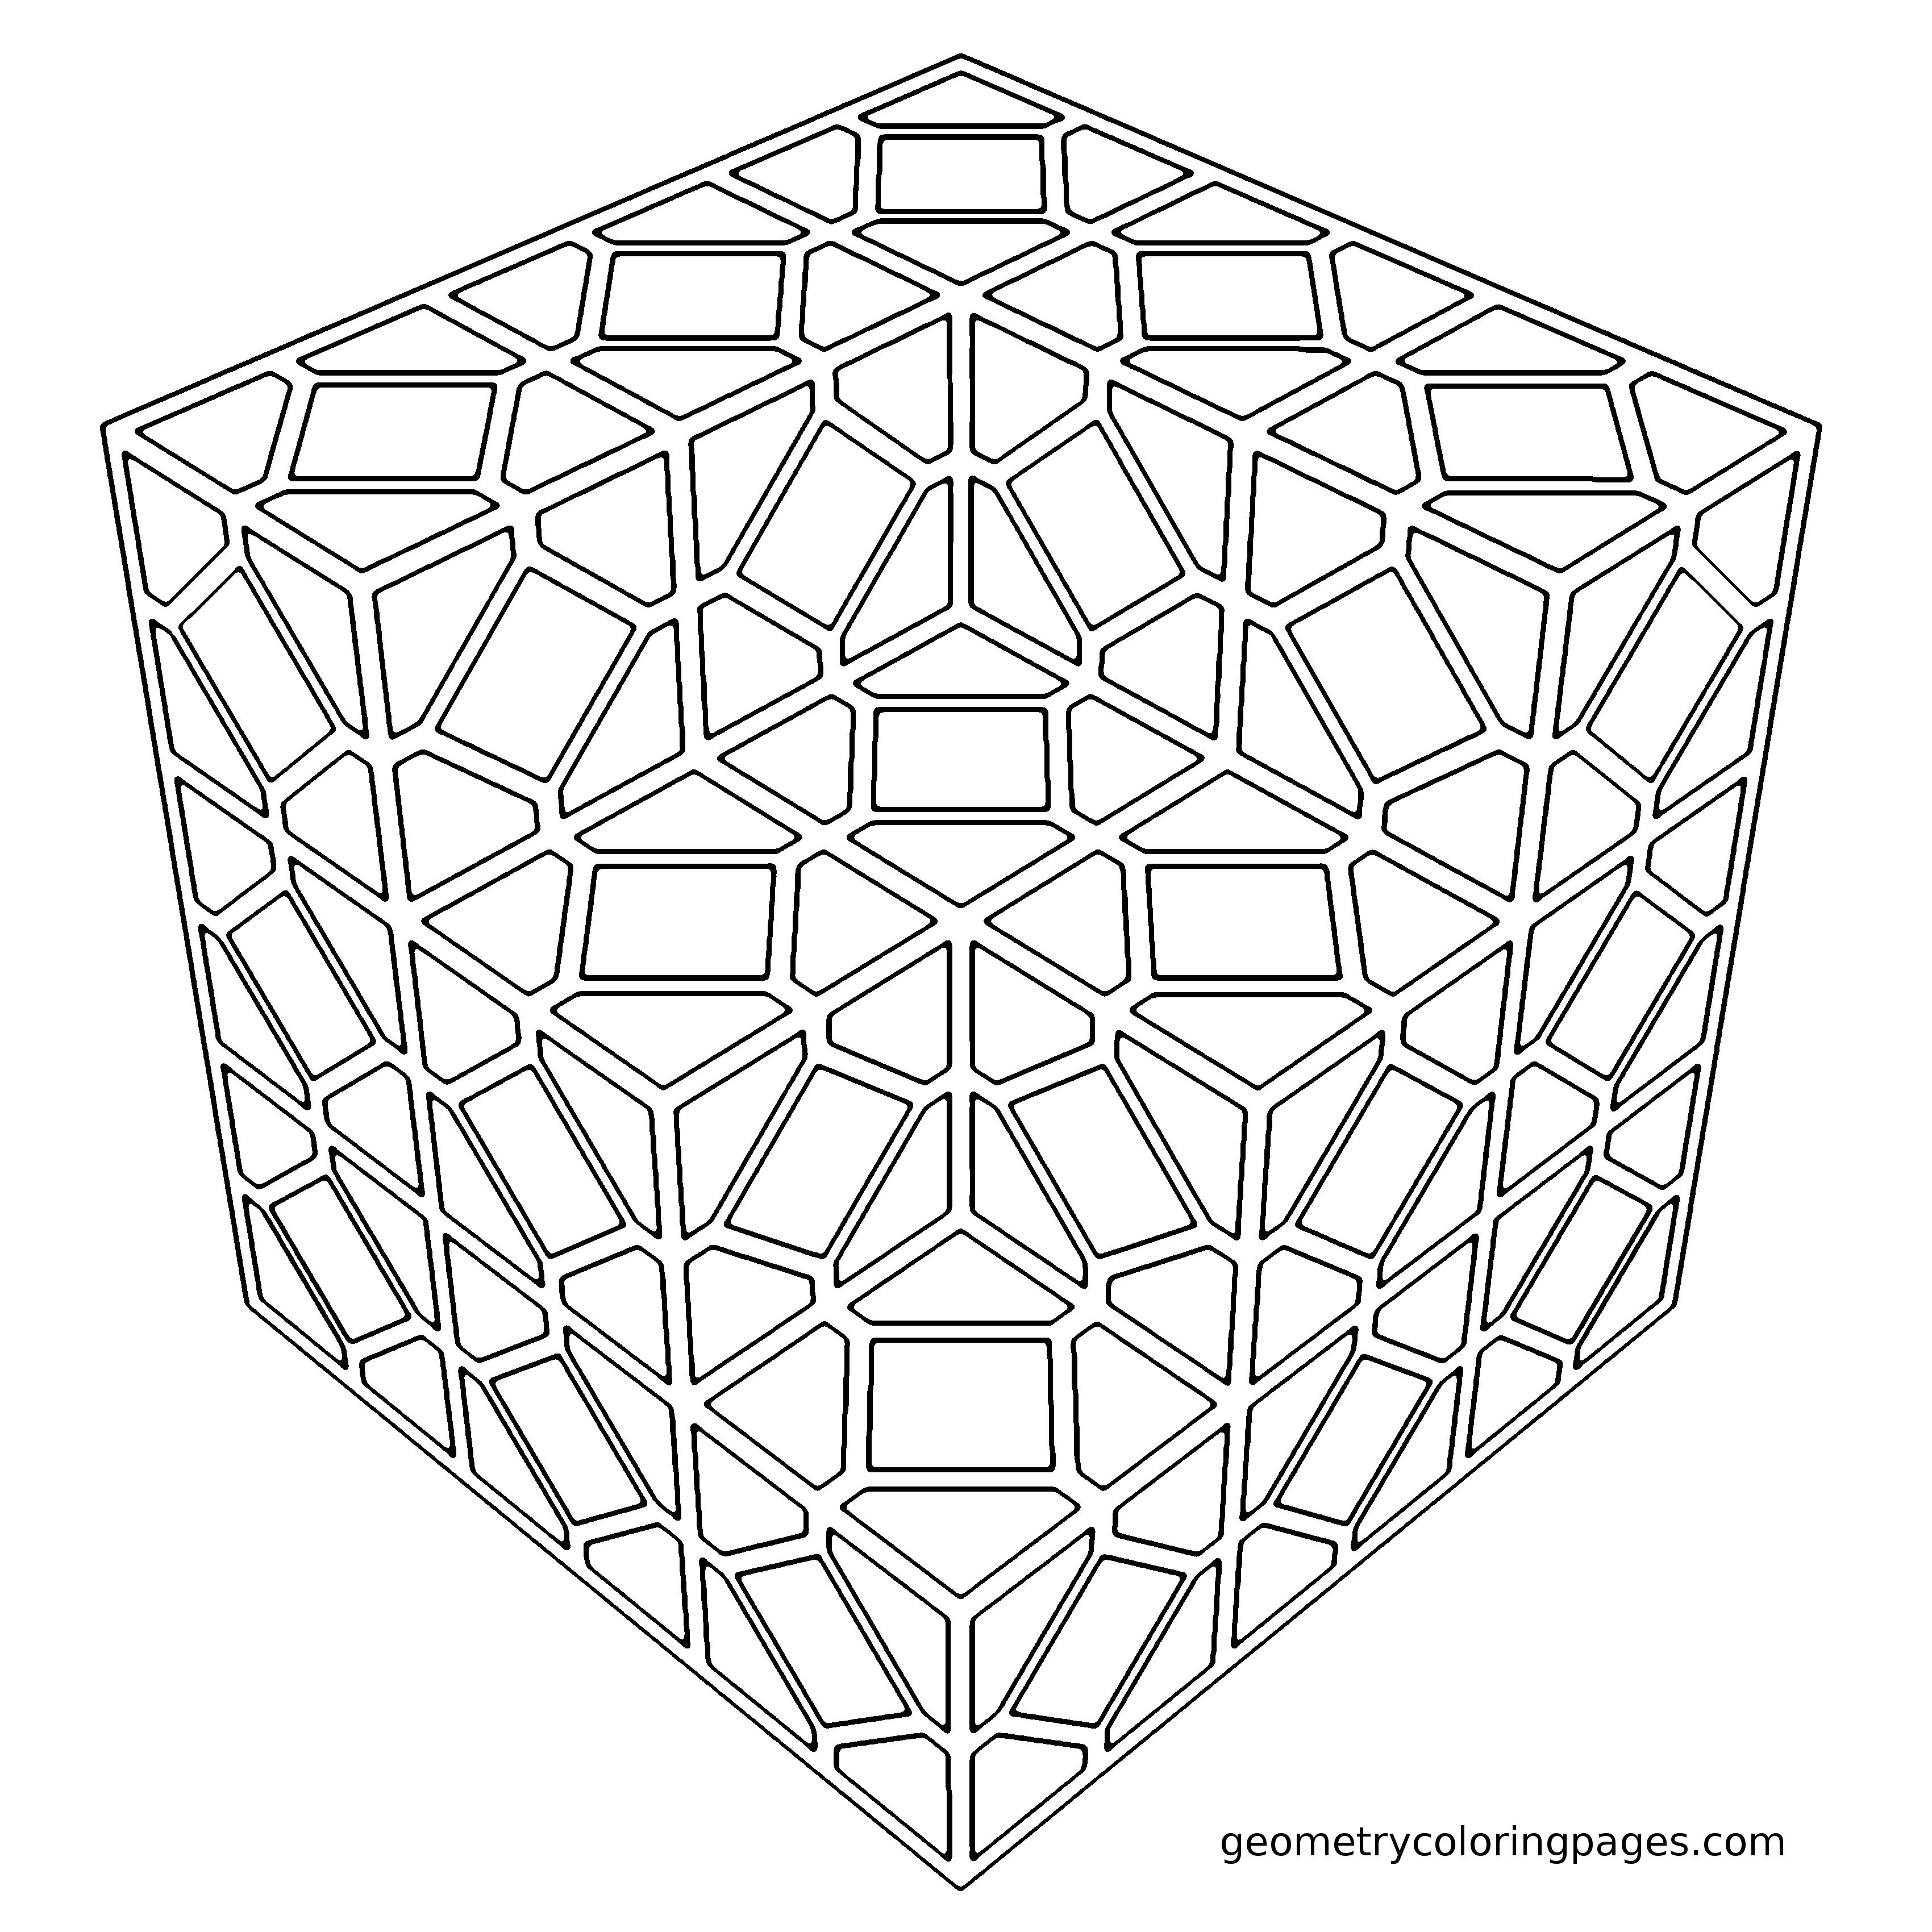 Coloring Page, Tiled from geometrycoloringpages.com | Cool Ideas ...